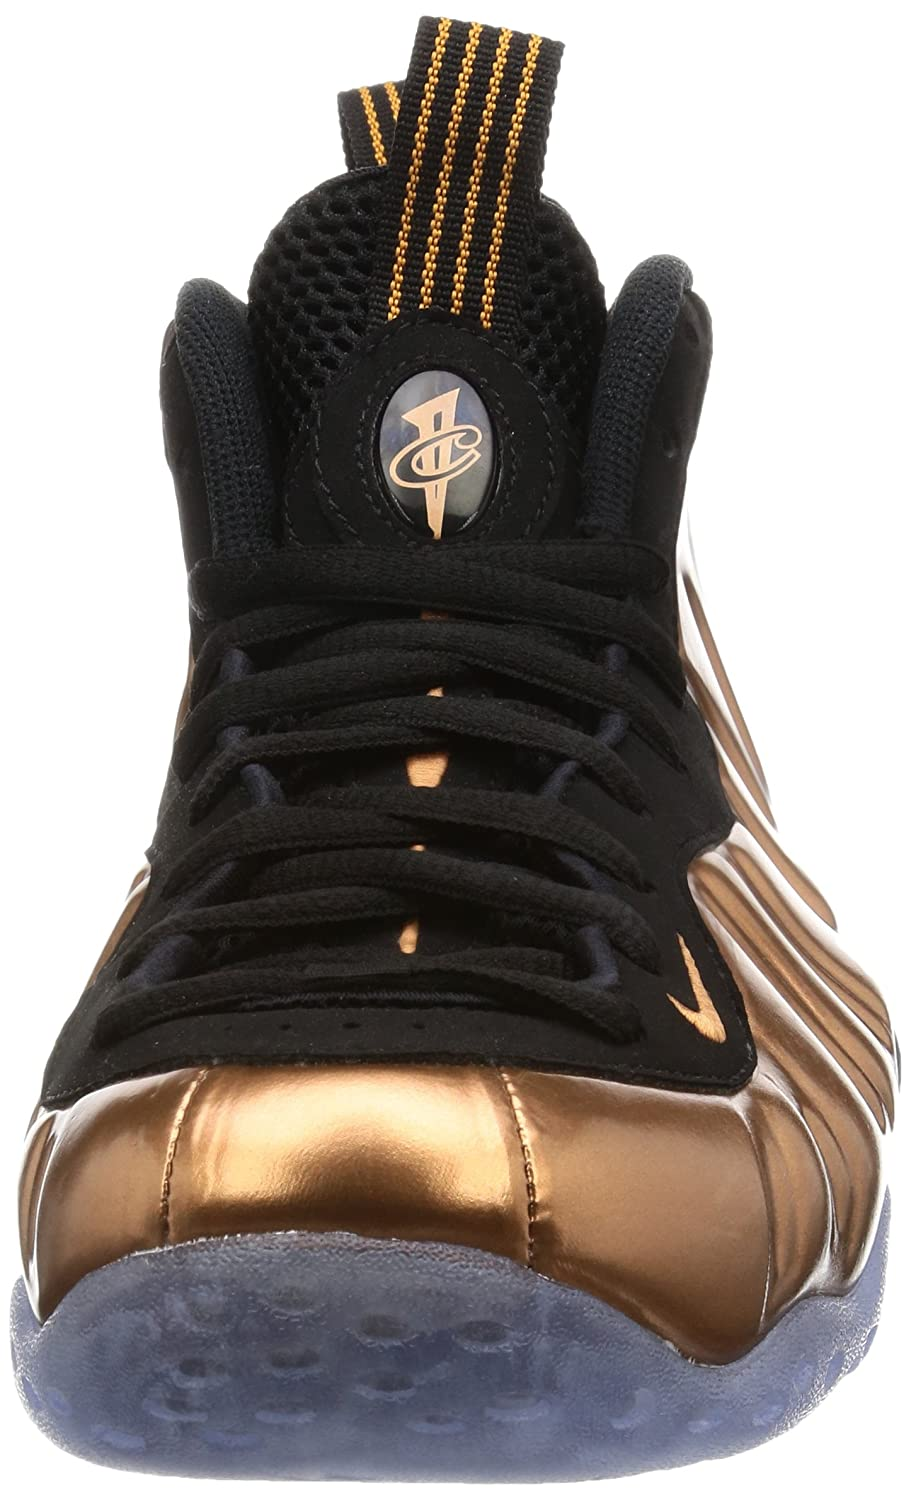 purchase cheap 61474 cad6e Nike Men s Air Foamposite One Basketball Shoes  Amazon.co.uk  Shoes   Bags